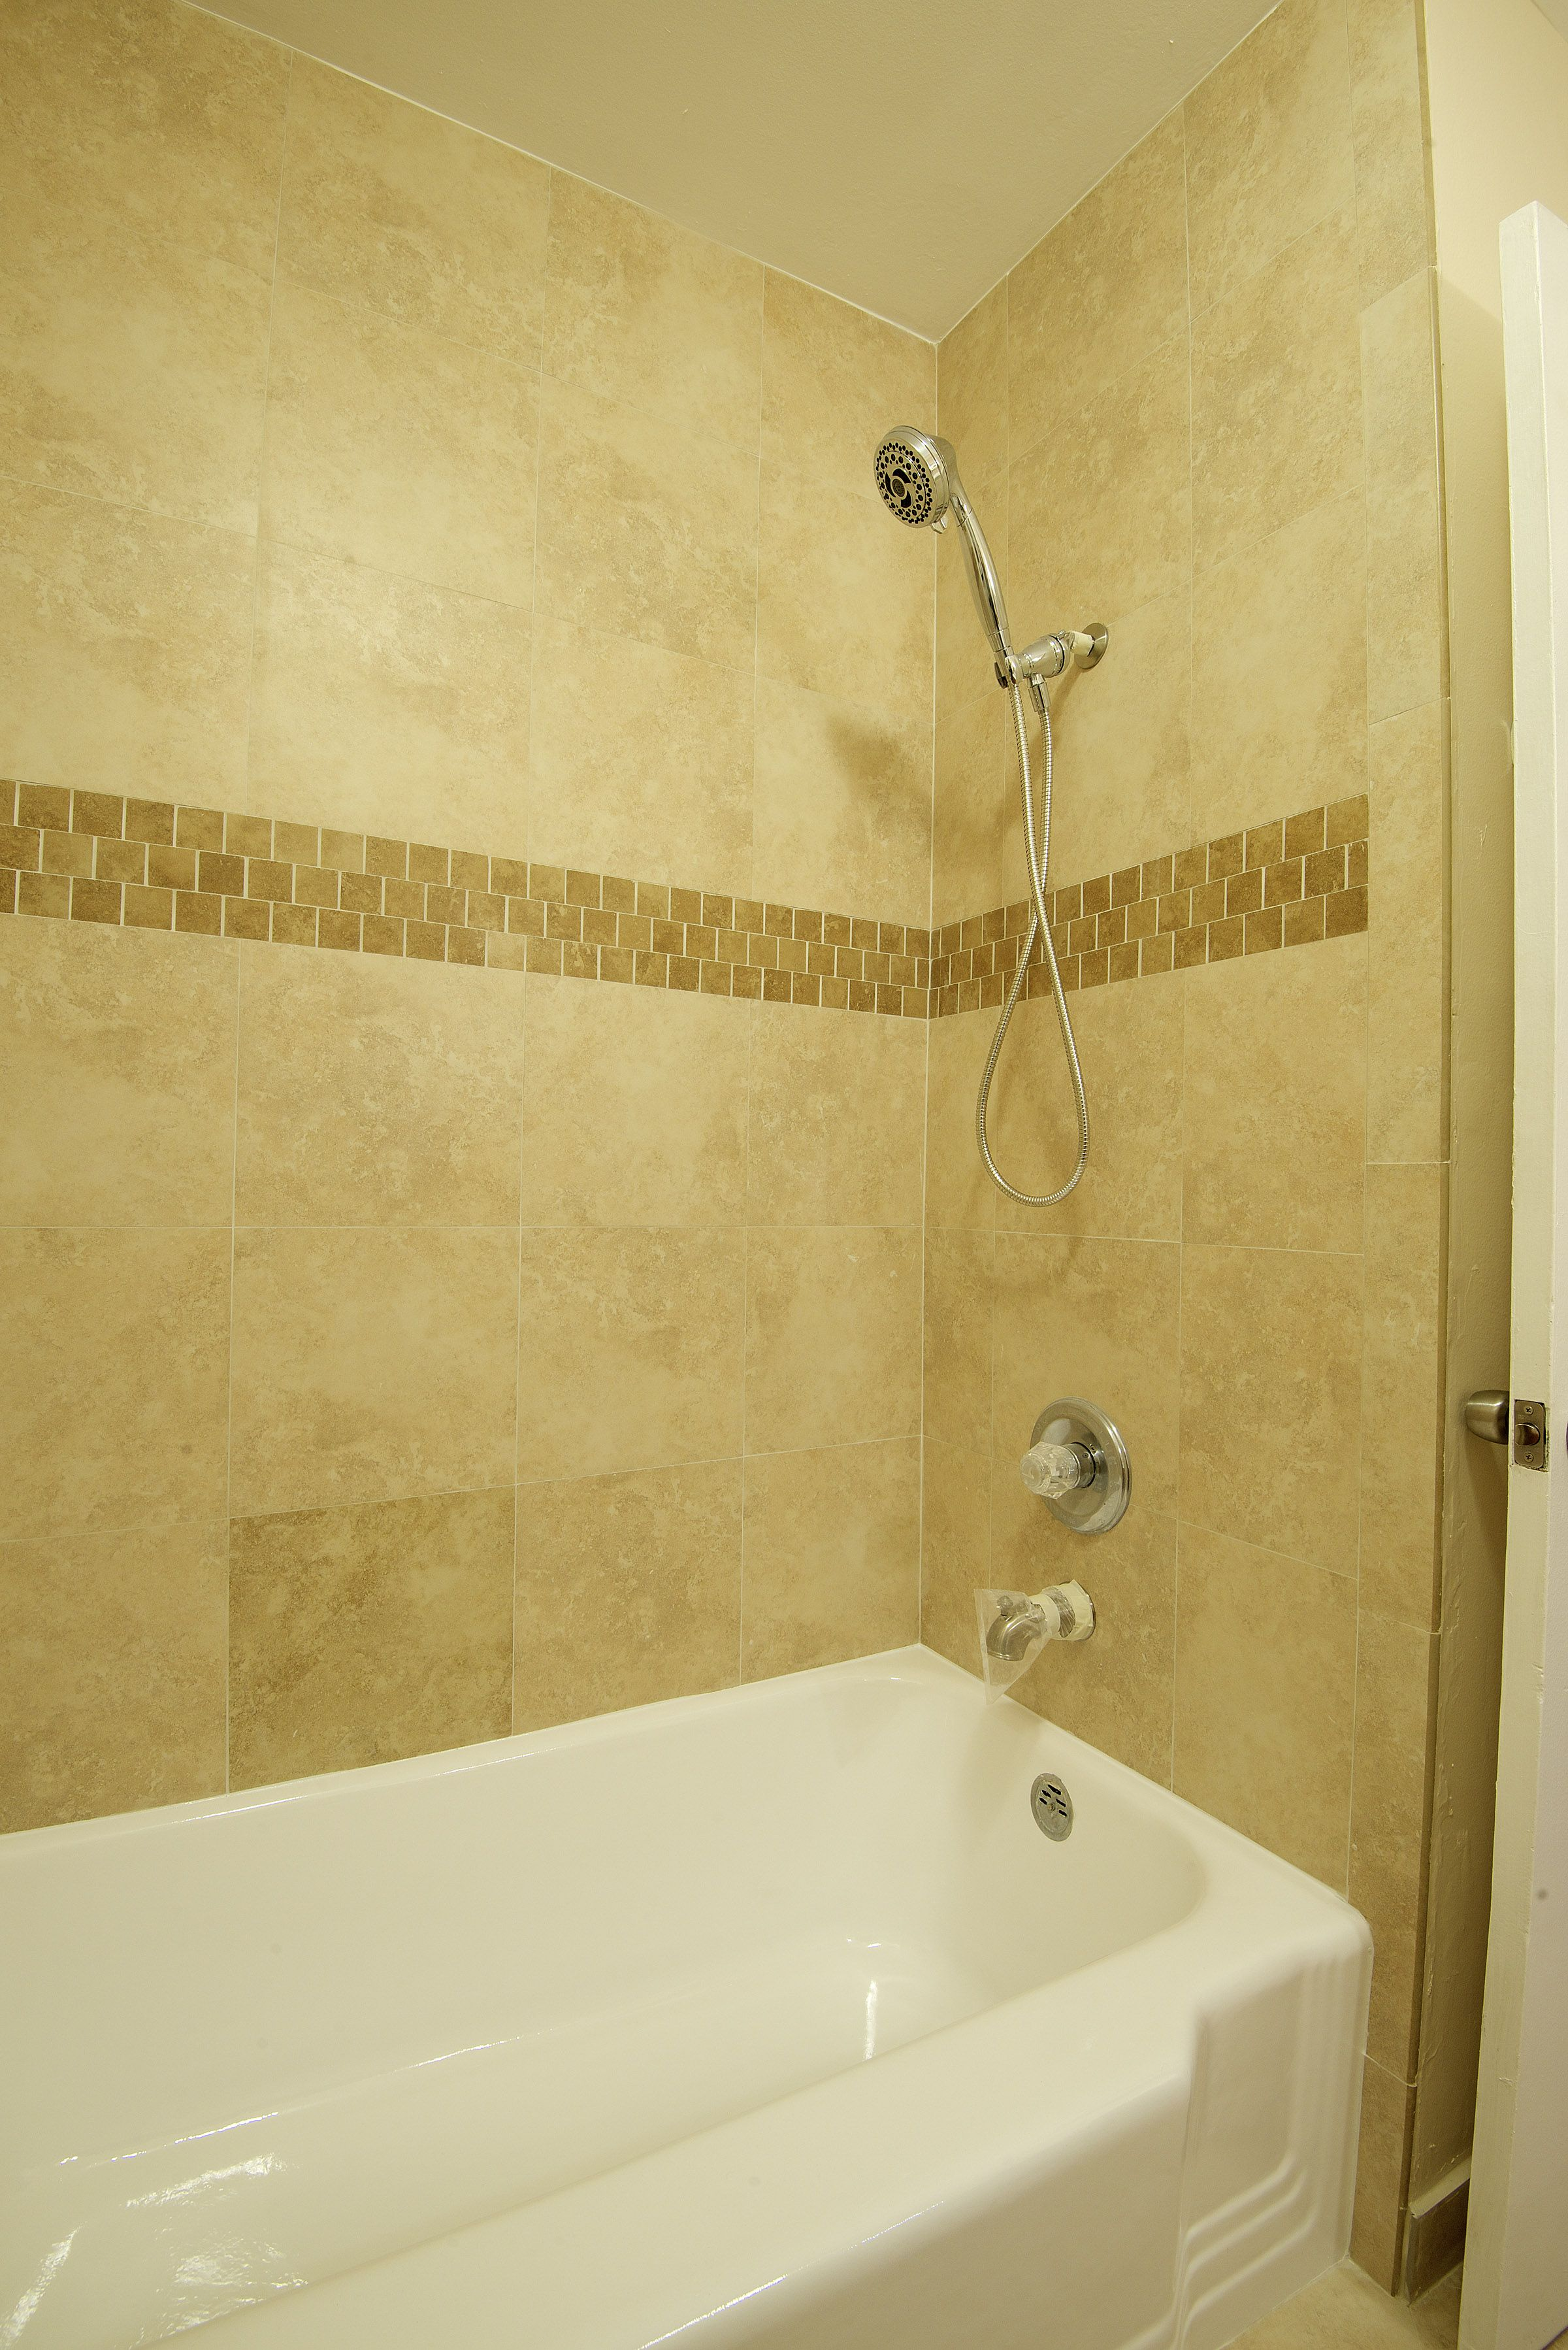 New shower tile refinished original tub (With images ...